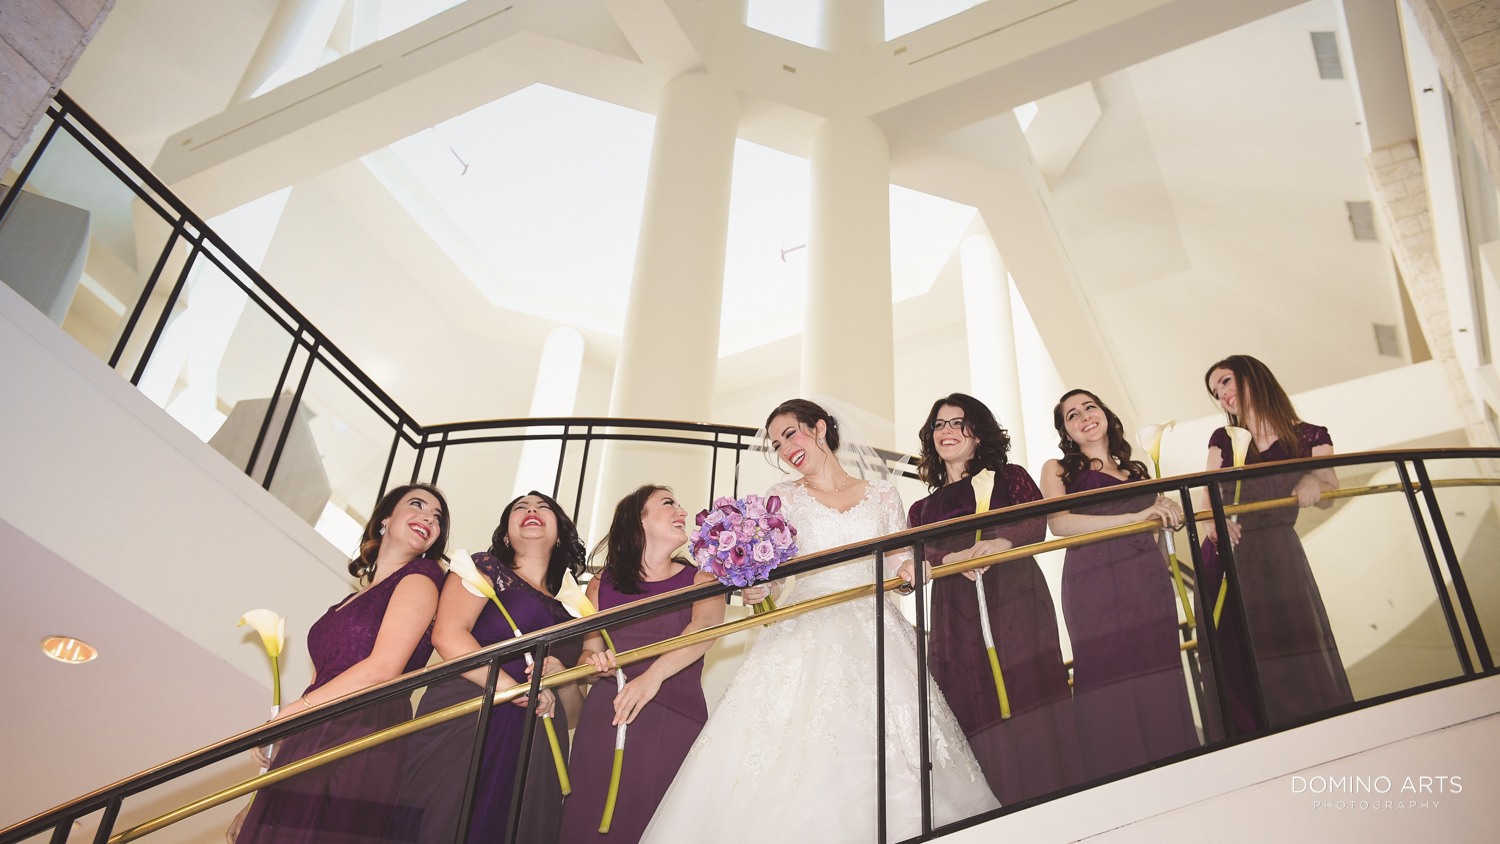 Fun bridesmaids pictures at Trump national Doral in South Florida